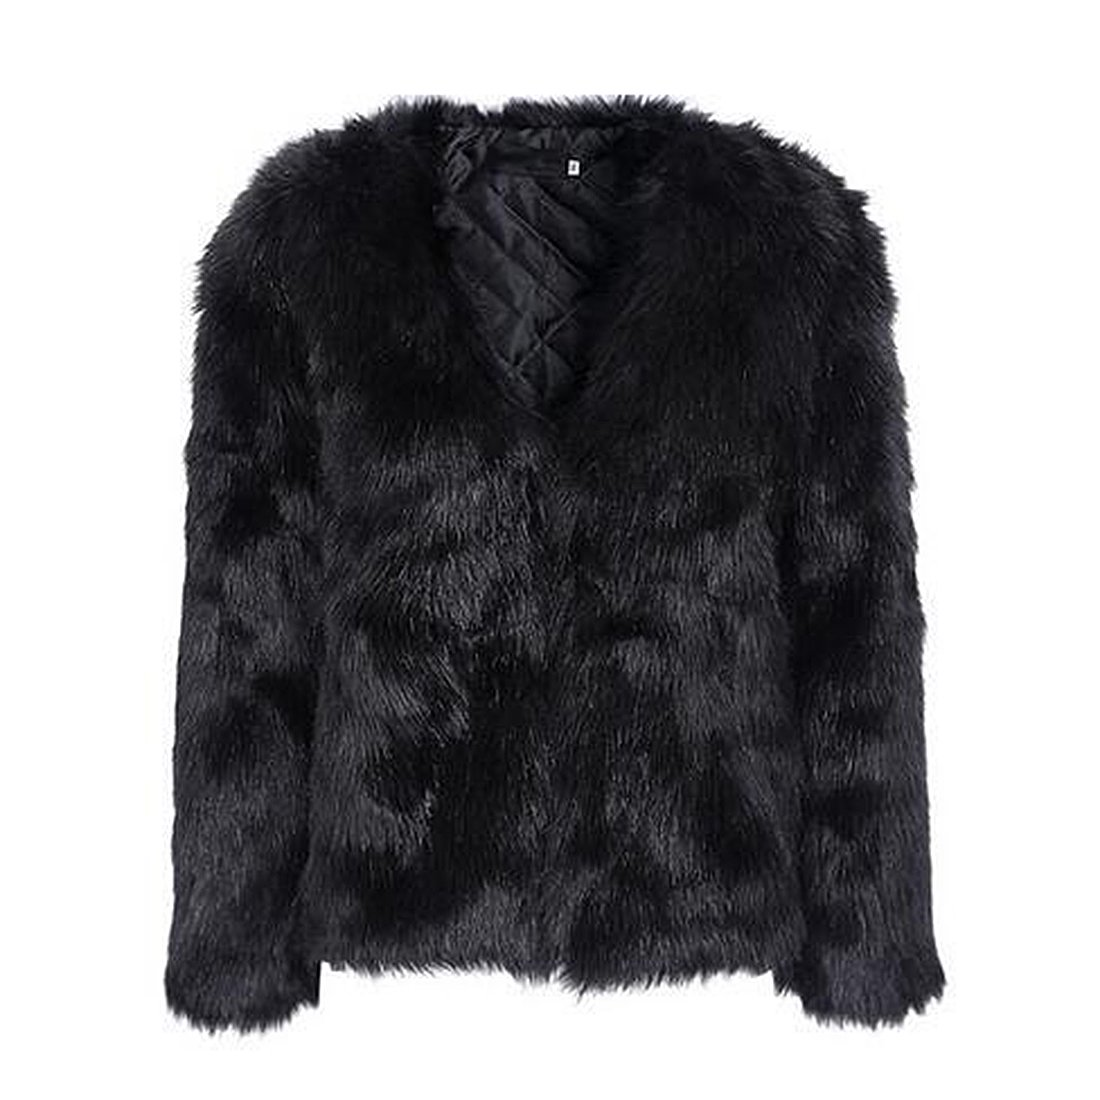 Women's Winter Warm Fluffy Faux Fur Coat Hooded Jacket Cardigan Outerwear Tops for Party Club Cocktail (Black,US 0-2 = Asian S)